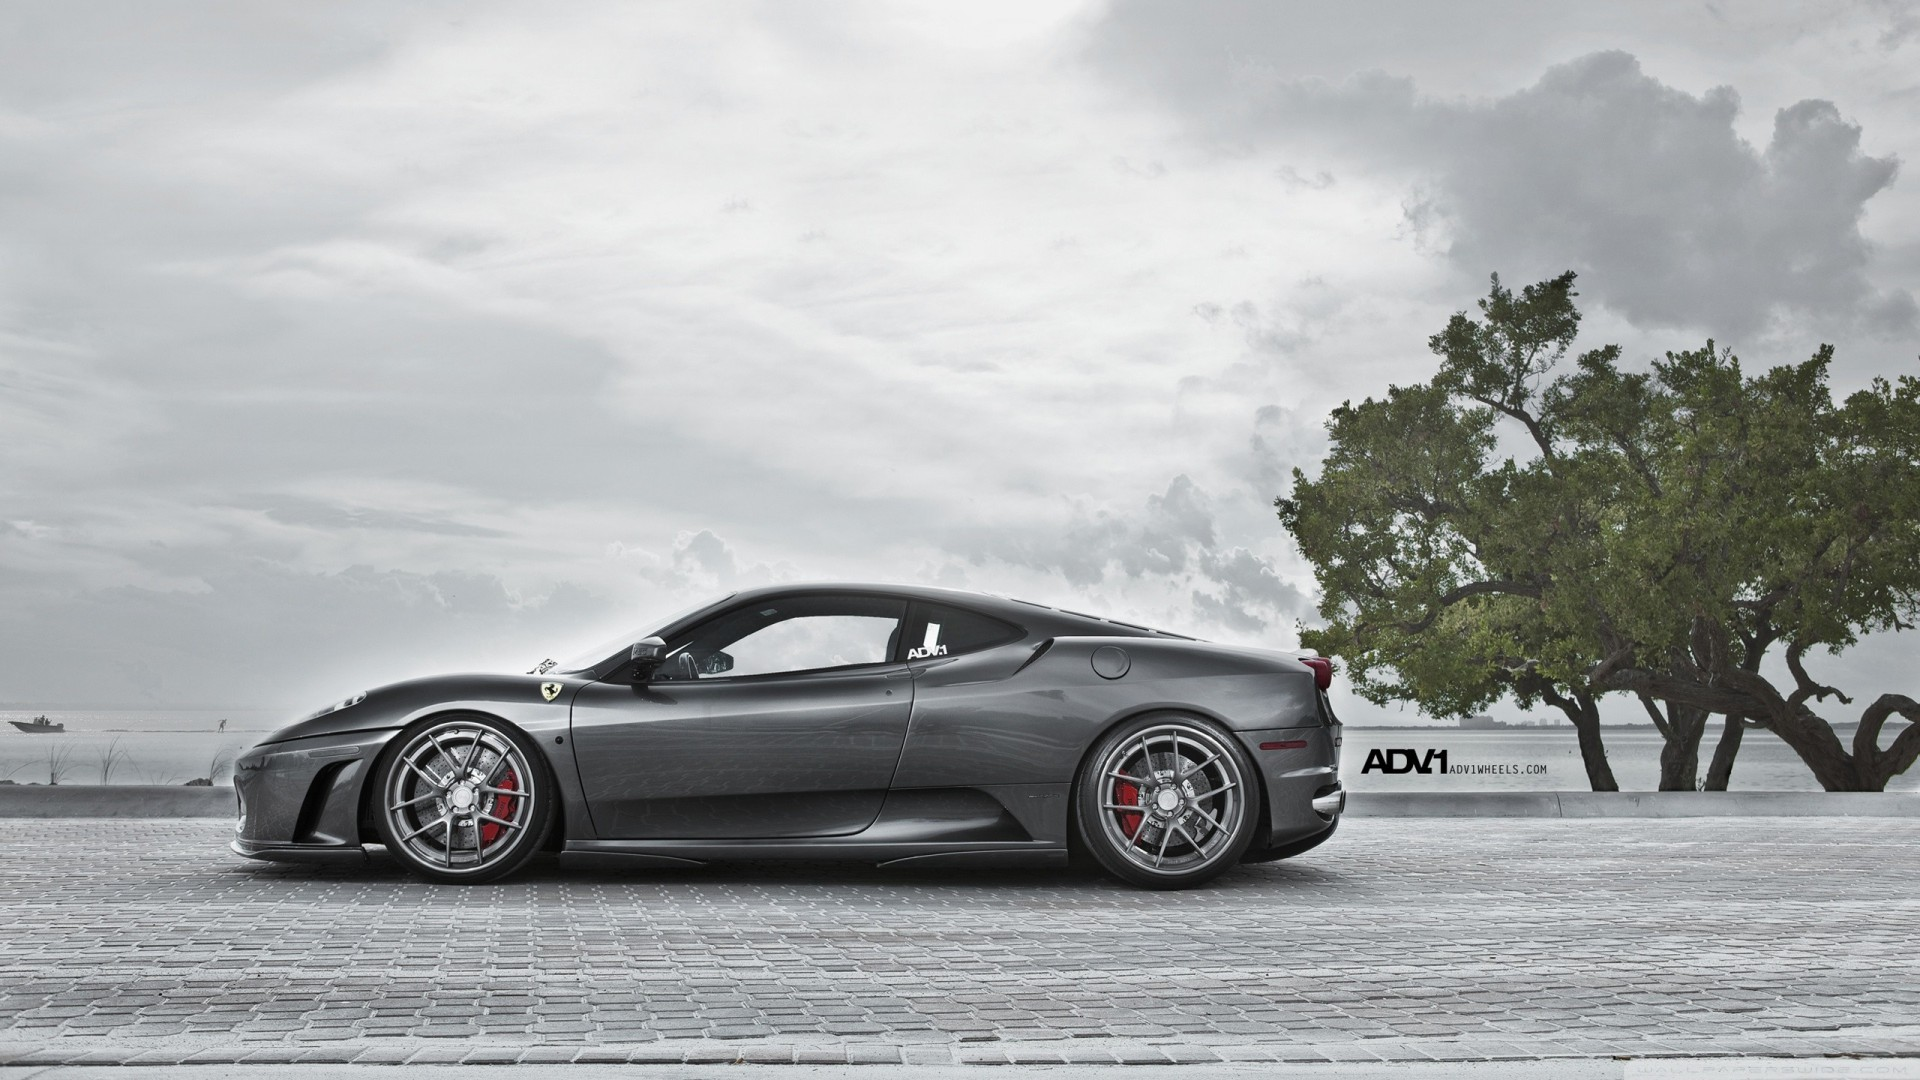 Ferrari F430 ADV1 Wheels